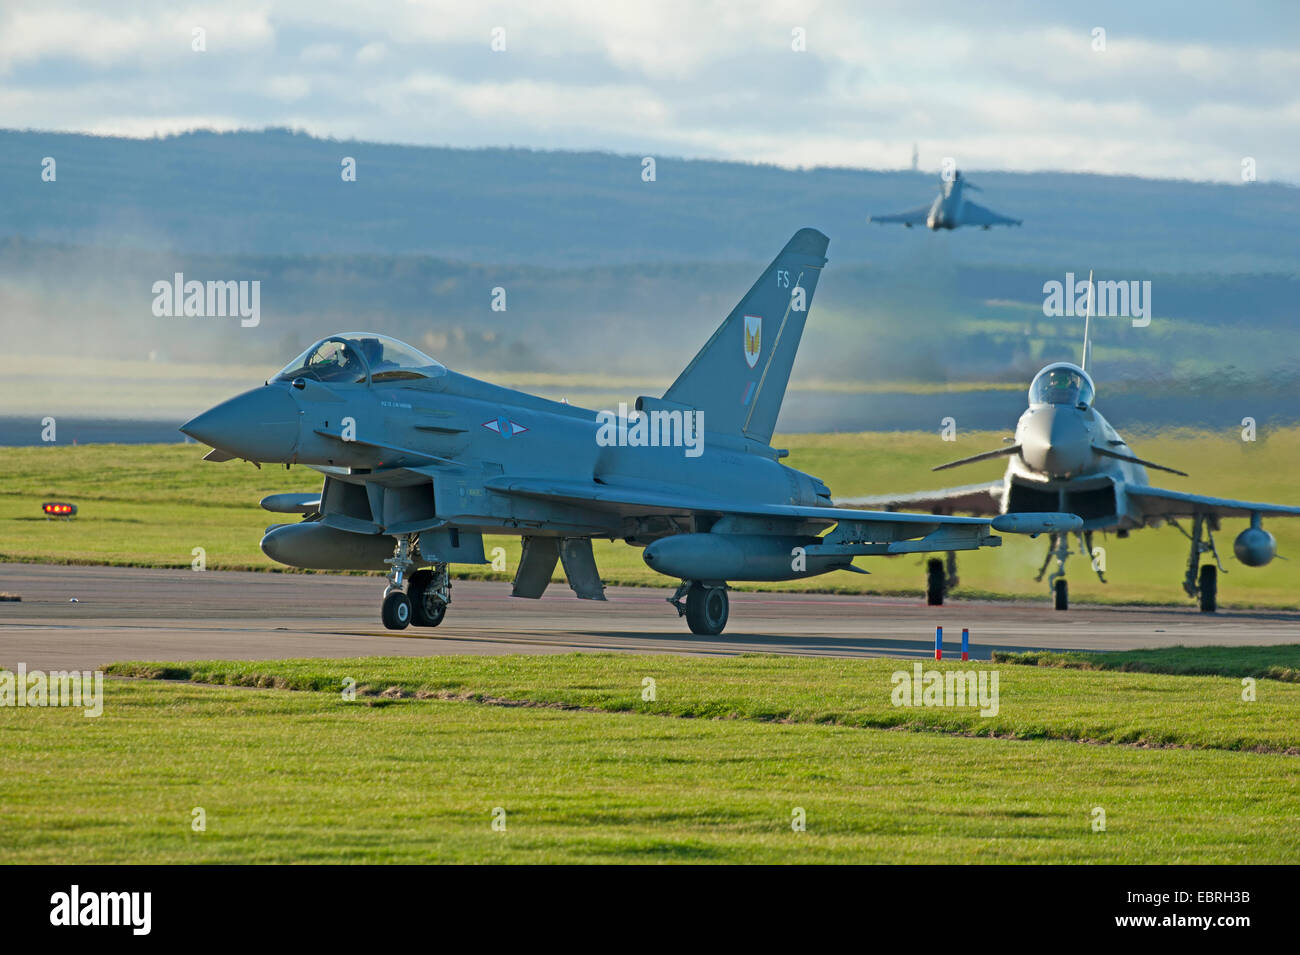 Eurofighter Typhoon FRG4s Military Jet Fighter preparing to depart RAF Lossiemouth air base.  SCO 9278. - Stock Image